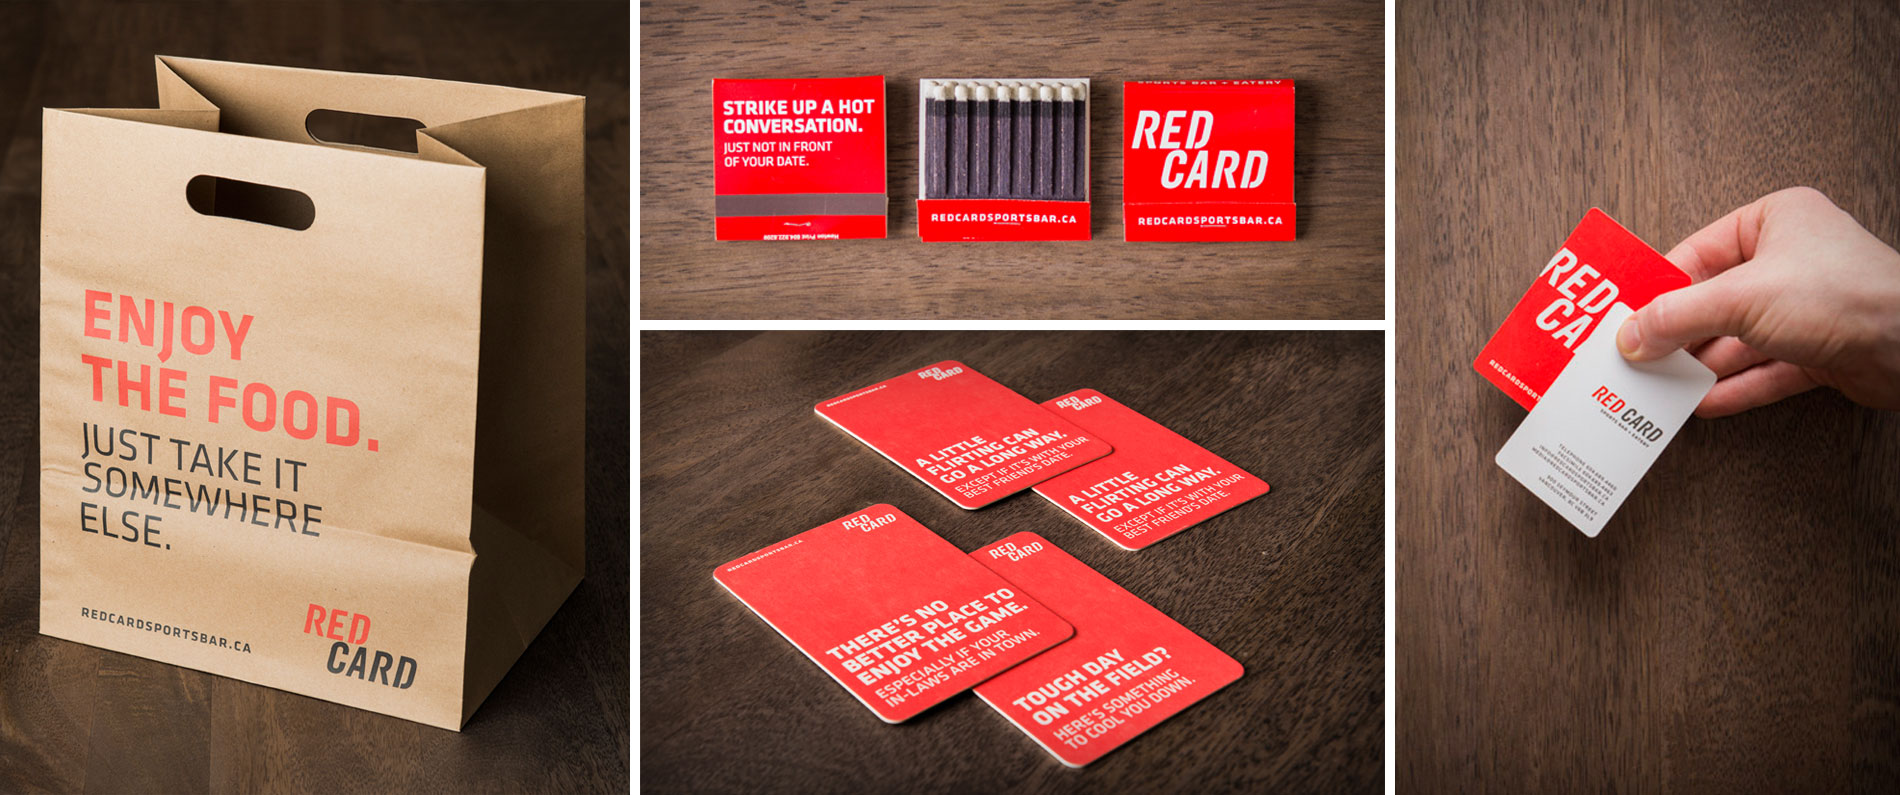 Custom matches, take out bags and coasters for Red Card